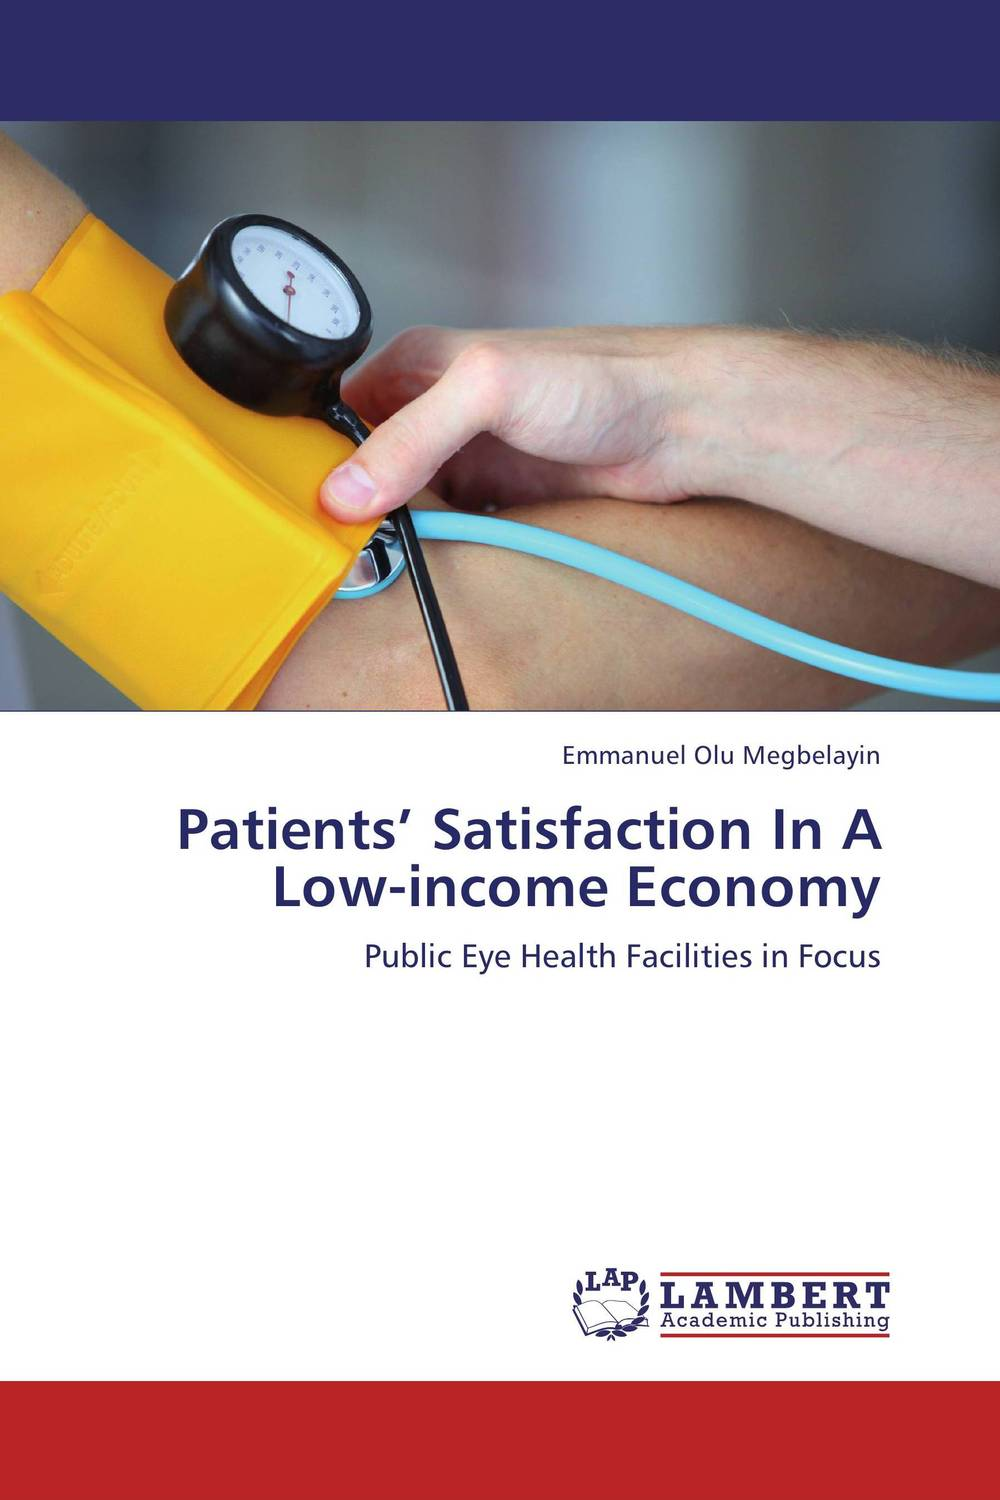 Patients' Satisfaction In A Low-income Economy kepha otieno demand elasticities for low income housing market